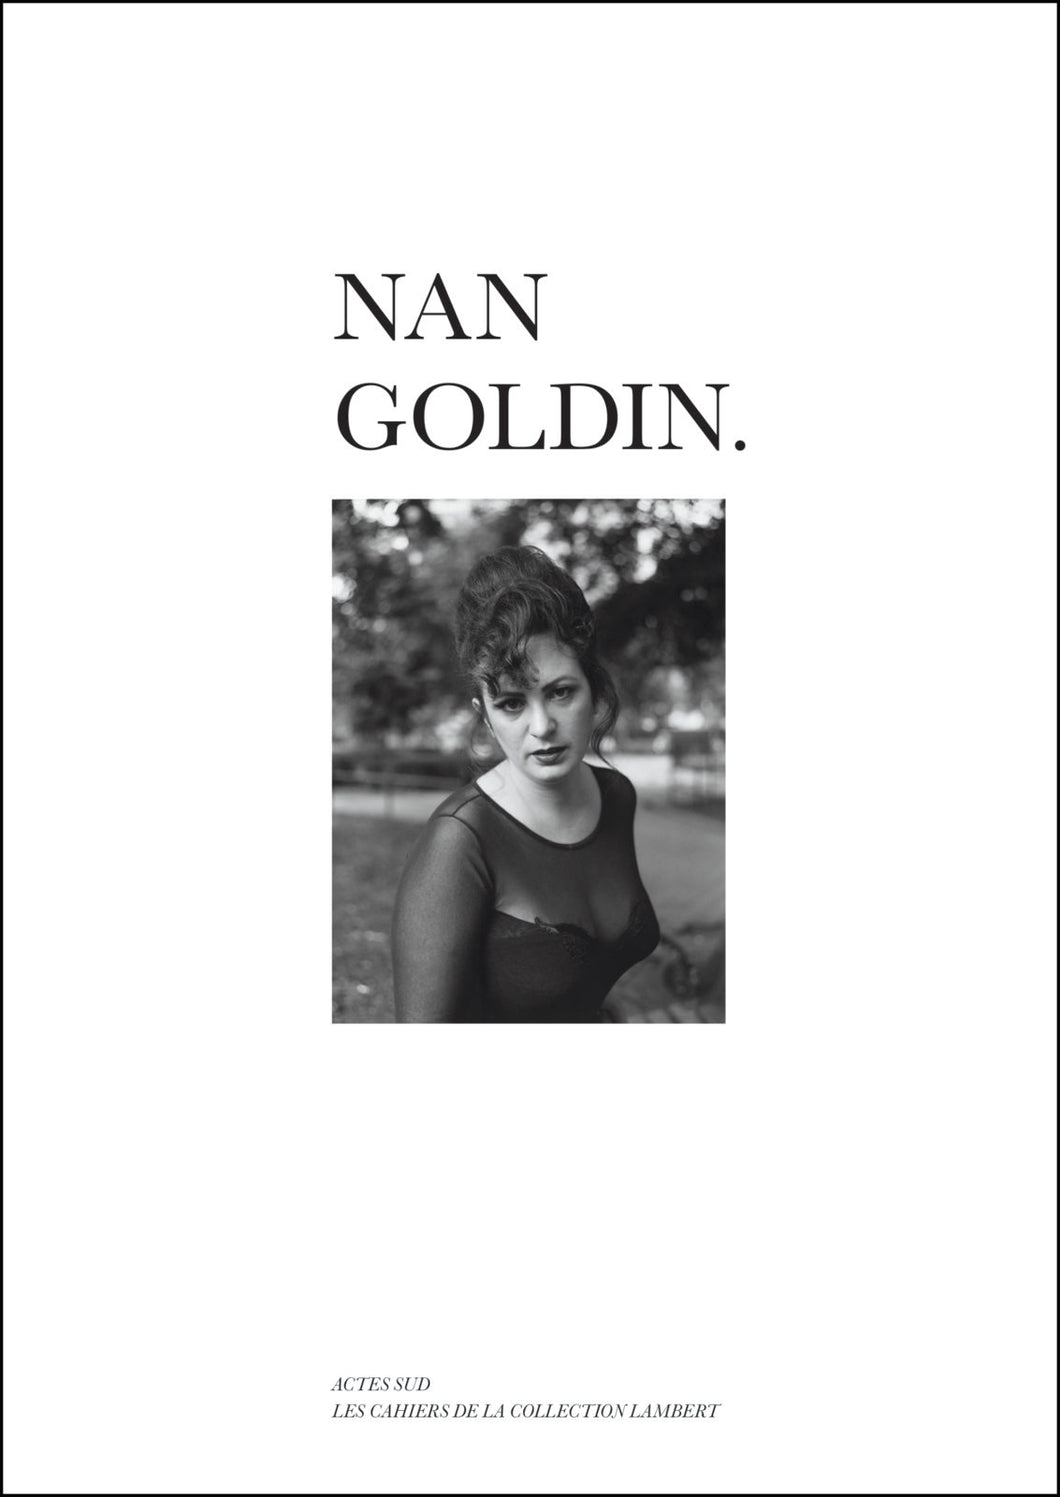 Nan Goldin (Les Cahiers de la Collection Lambert)